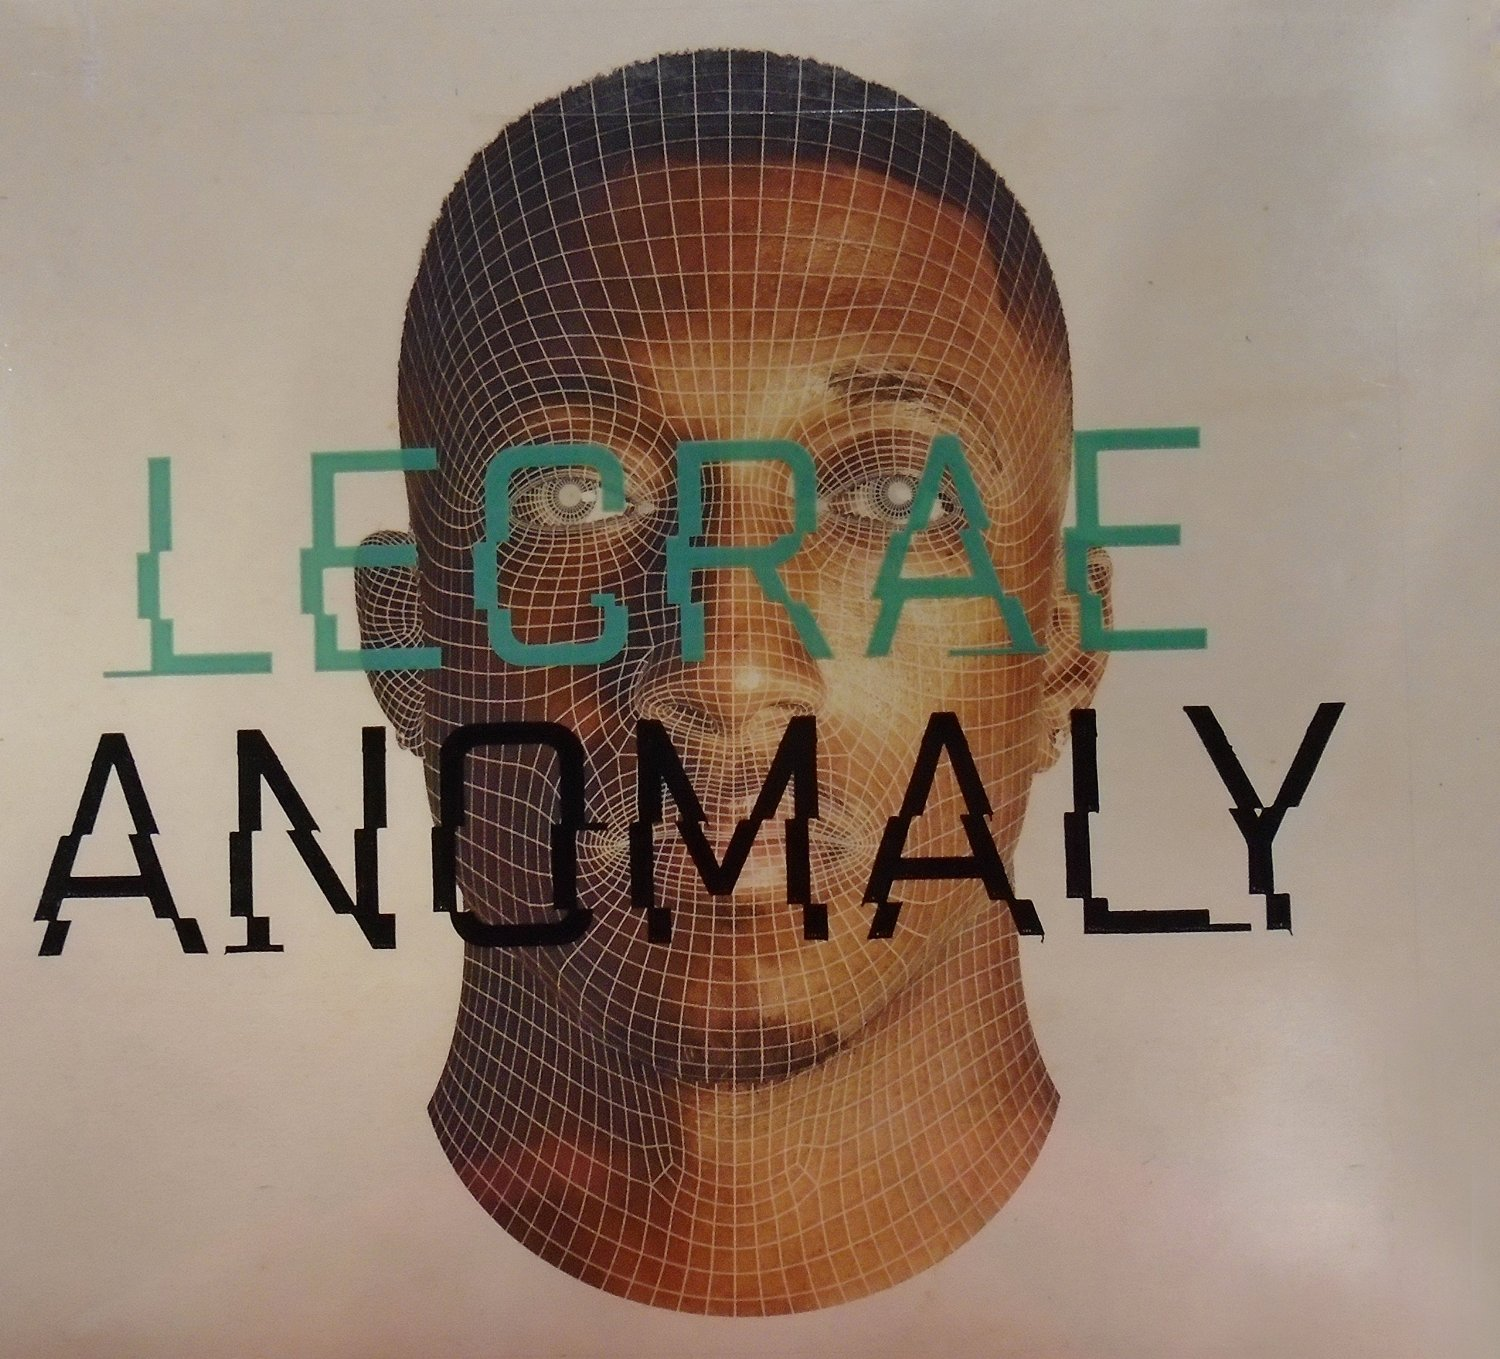 lecrae anomaly hits no 1 on billboard top 200